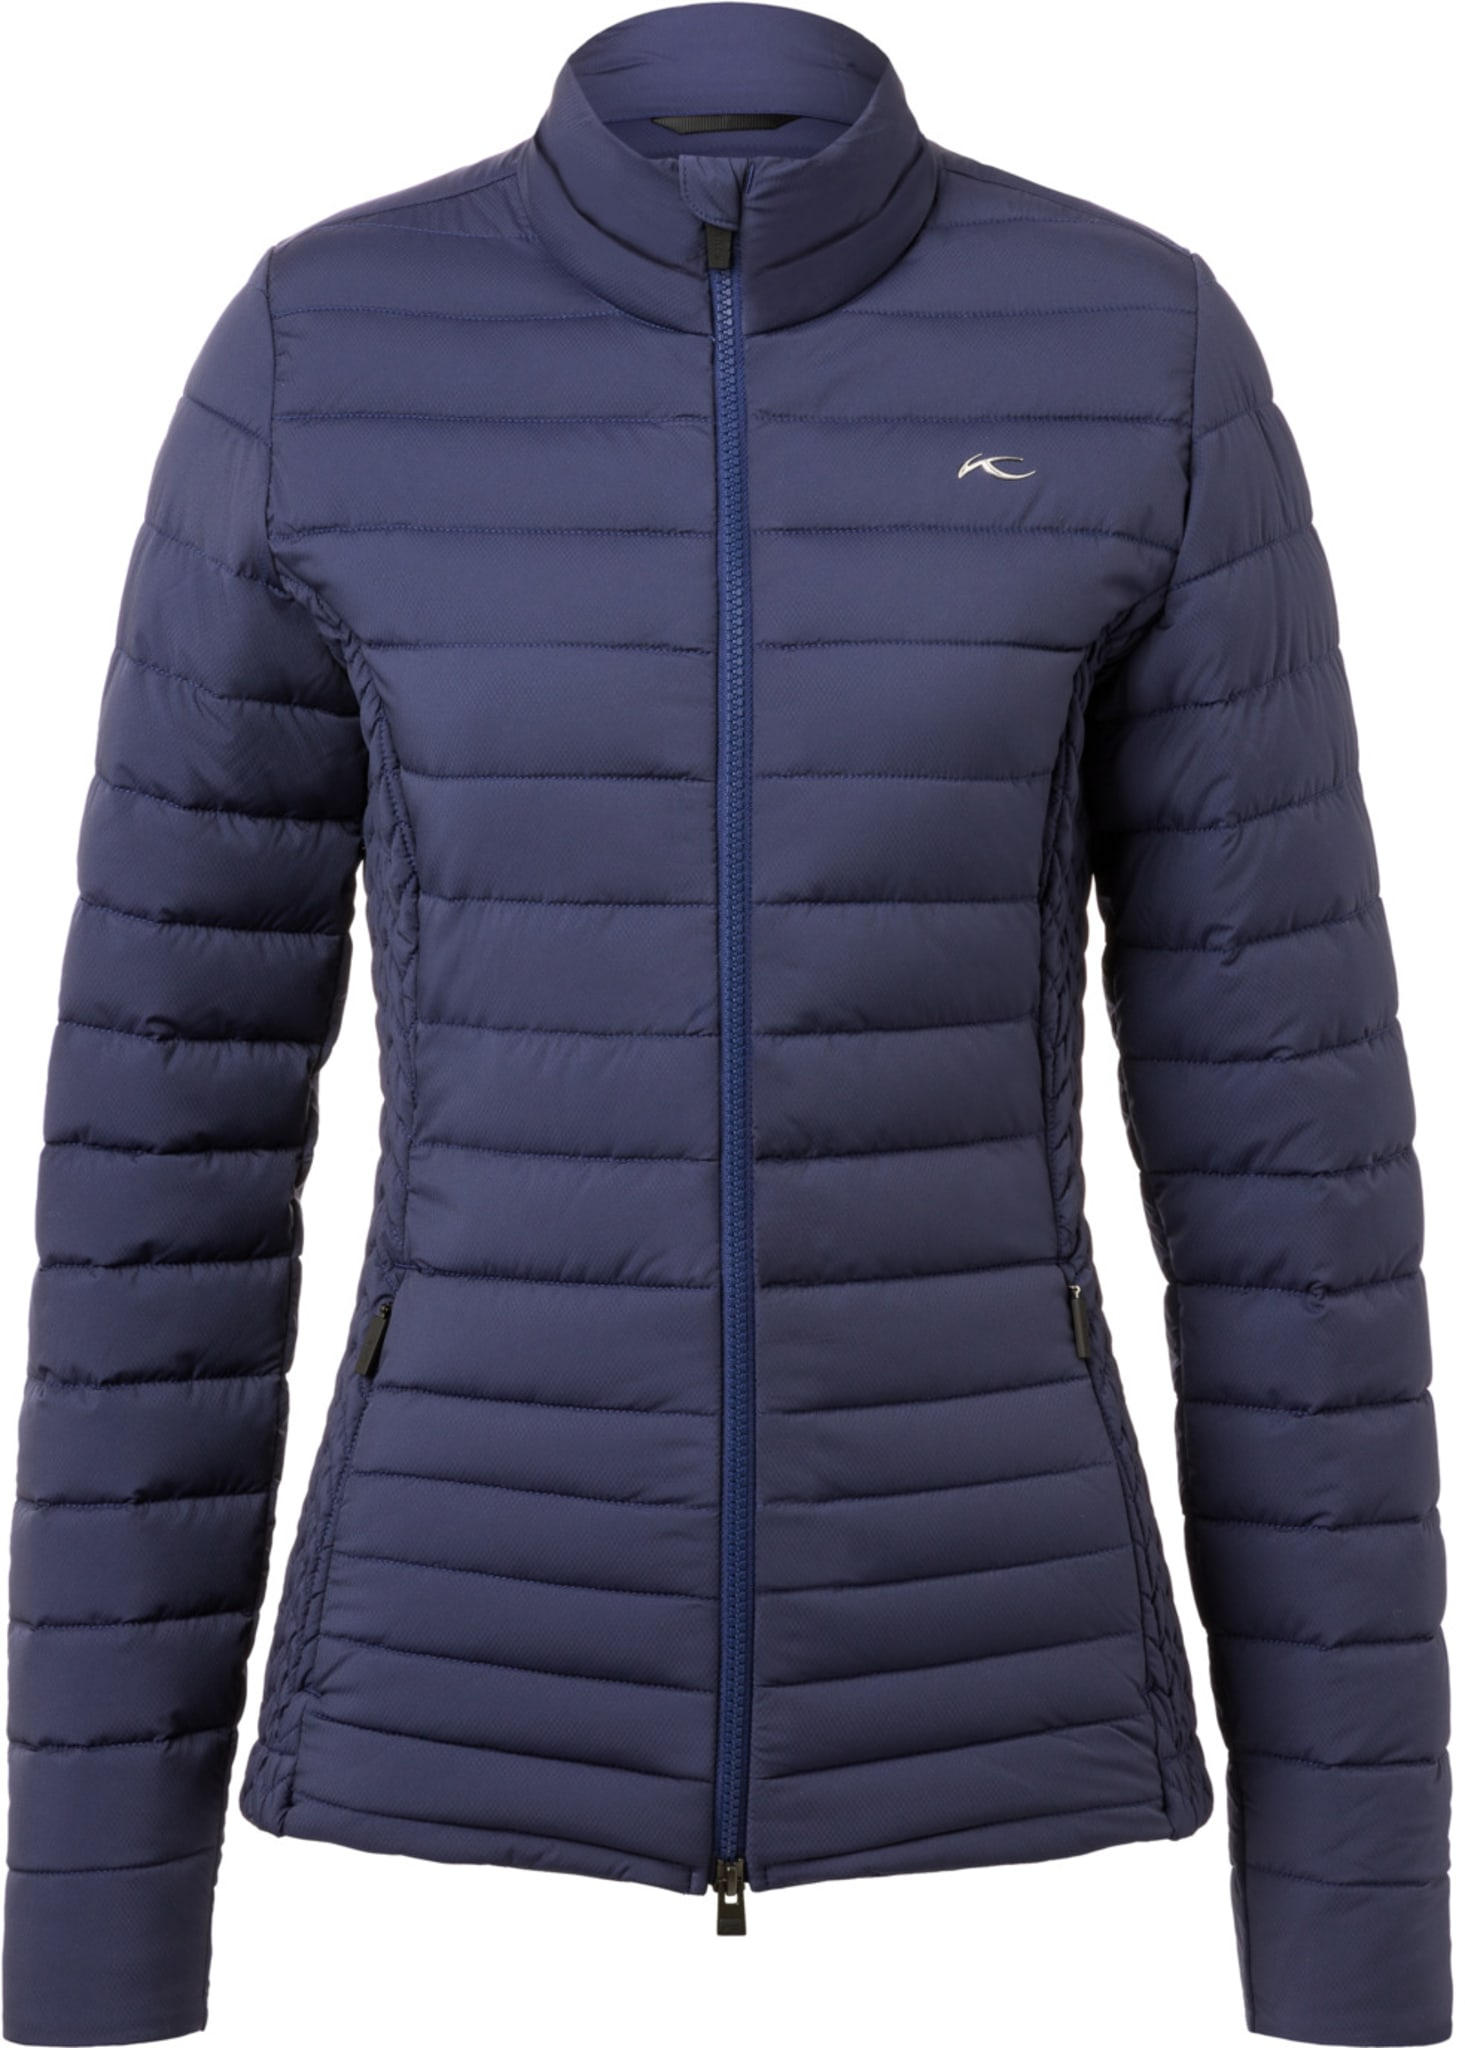 Macuna Insulation Jacket Woman